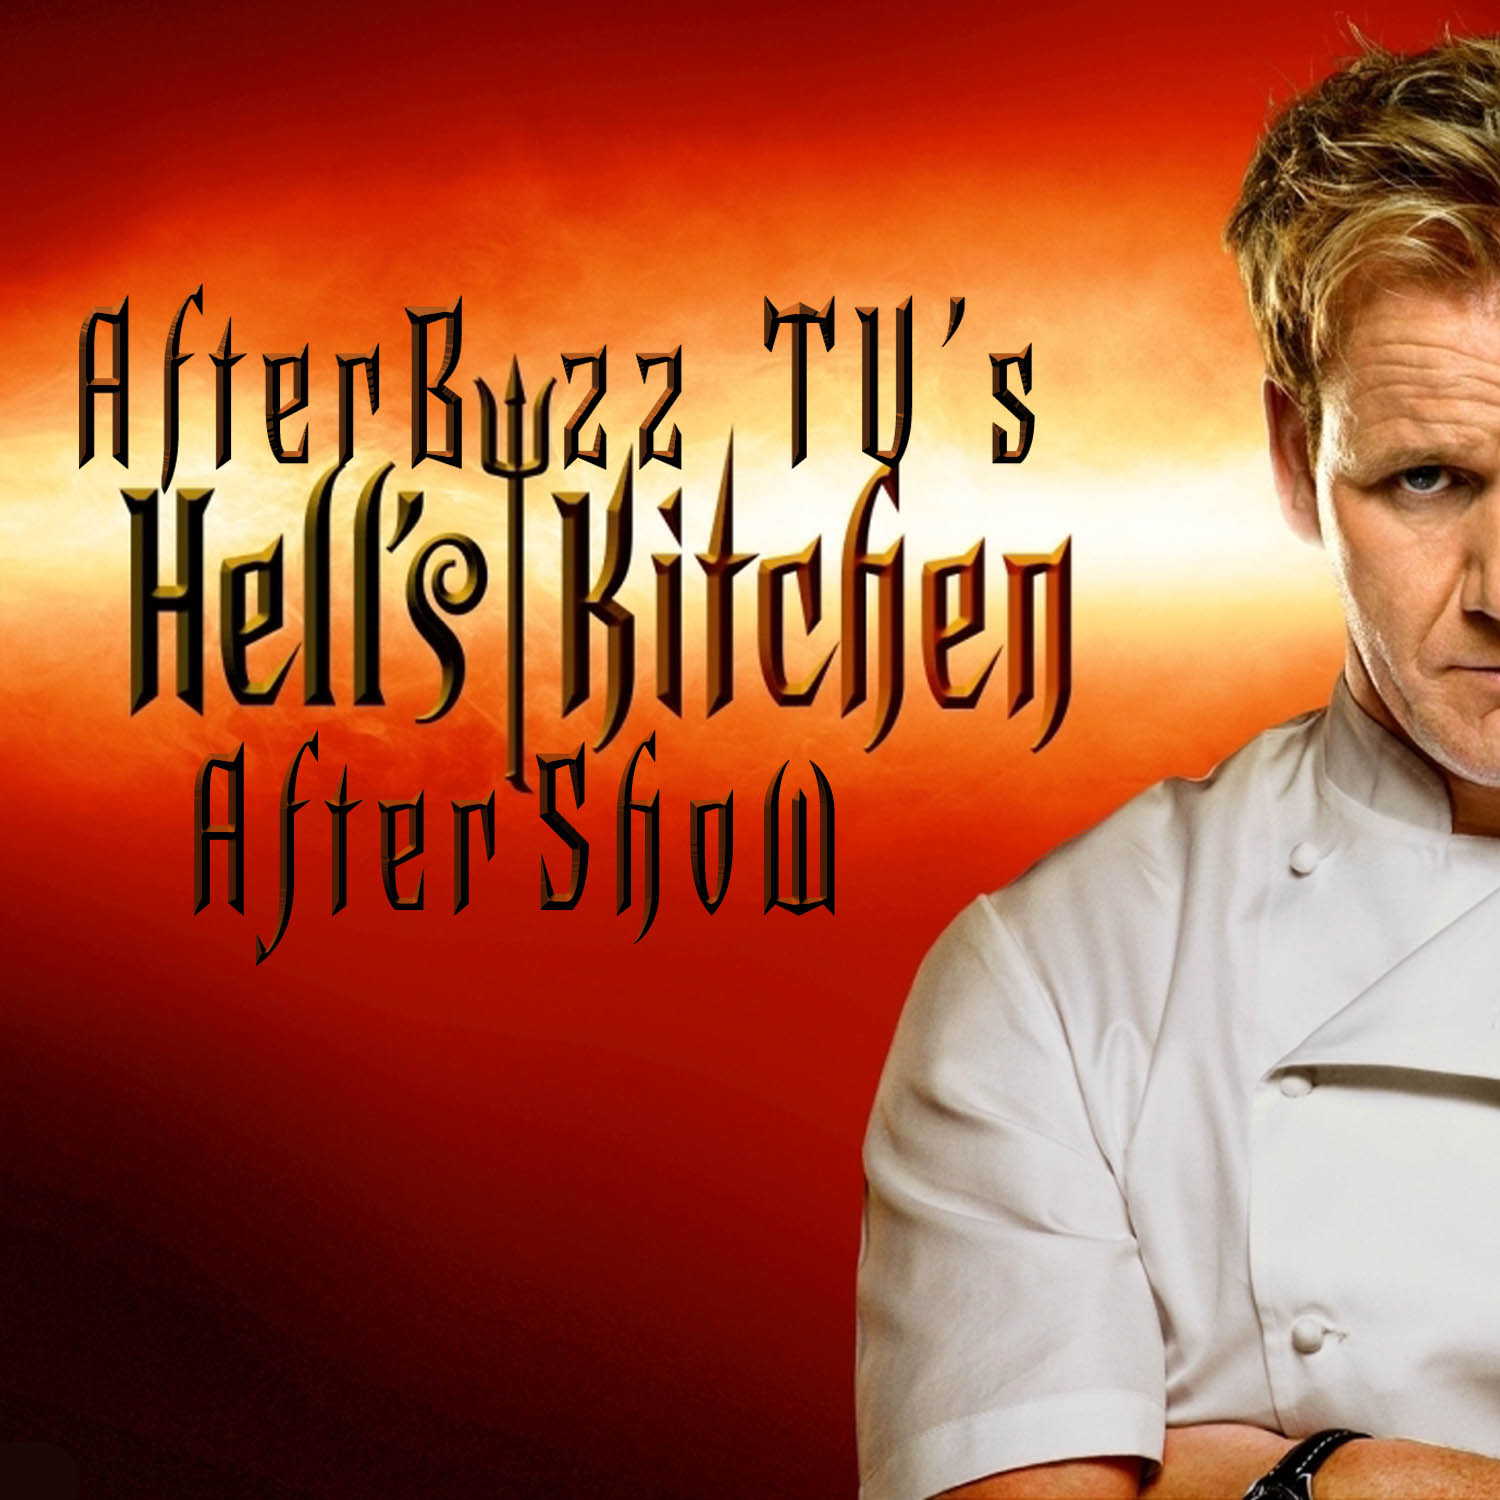 Hell's Kitchen After Show